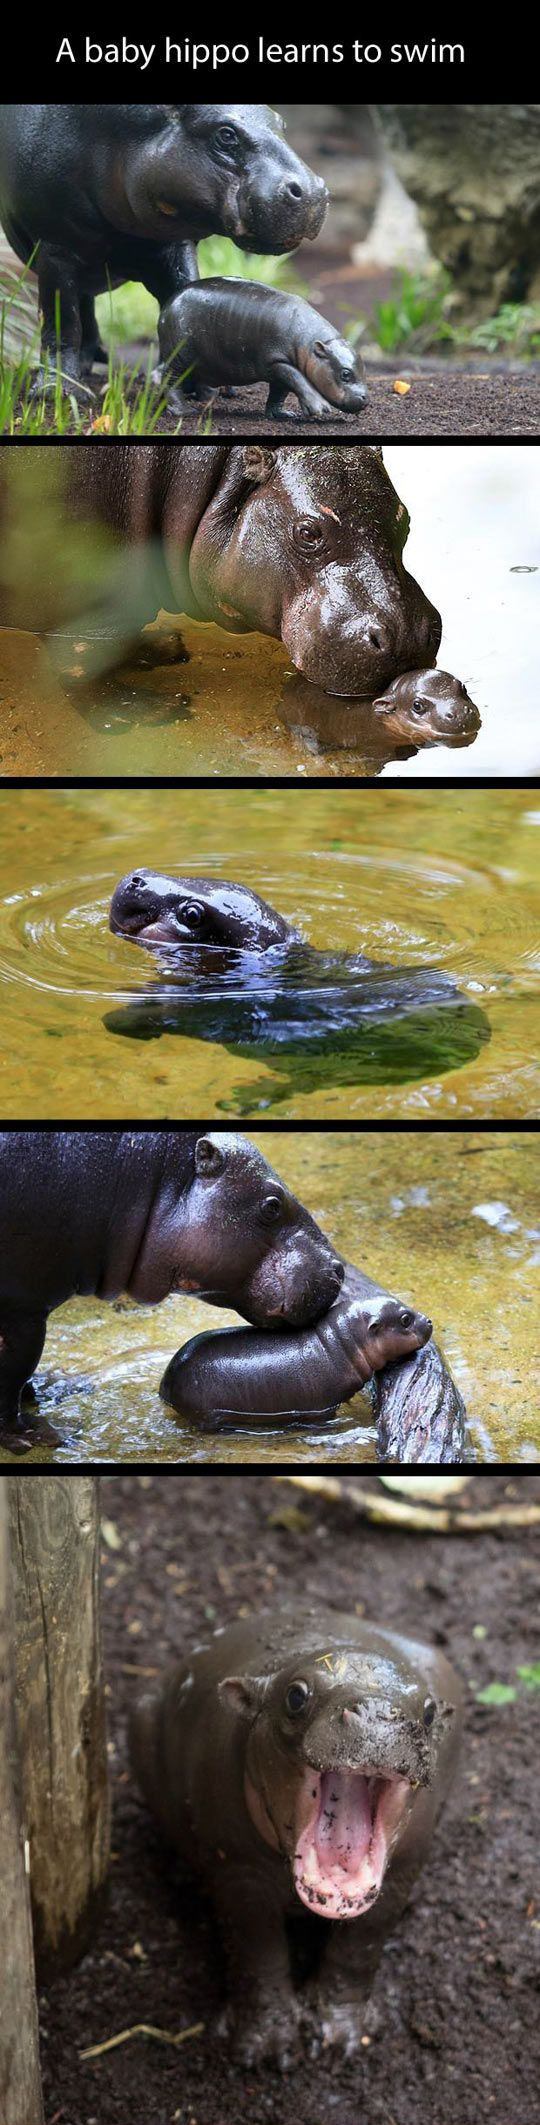 This Baby Hippo Makes Me Happy#funny #lol #lolzonline